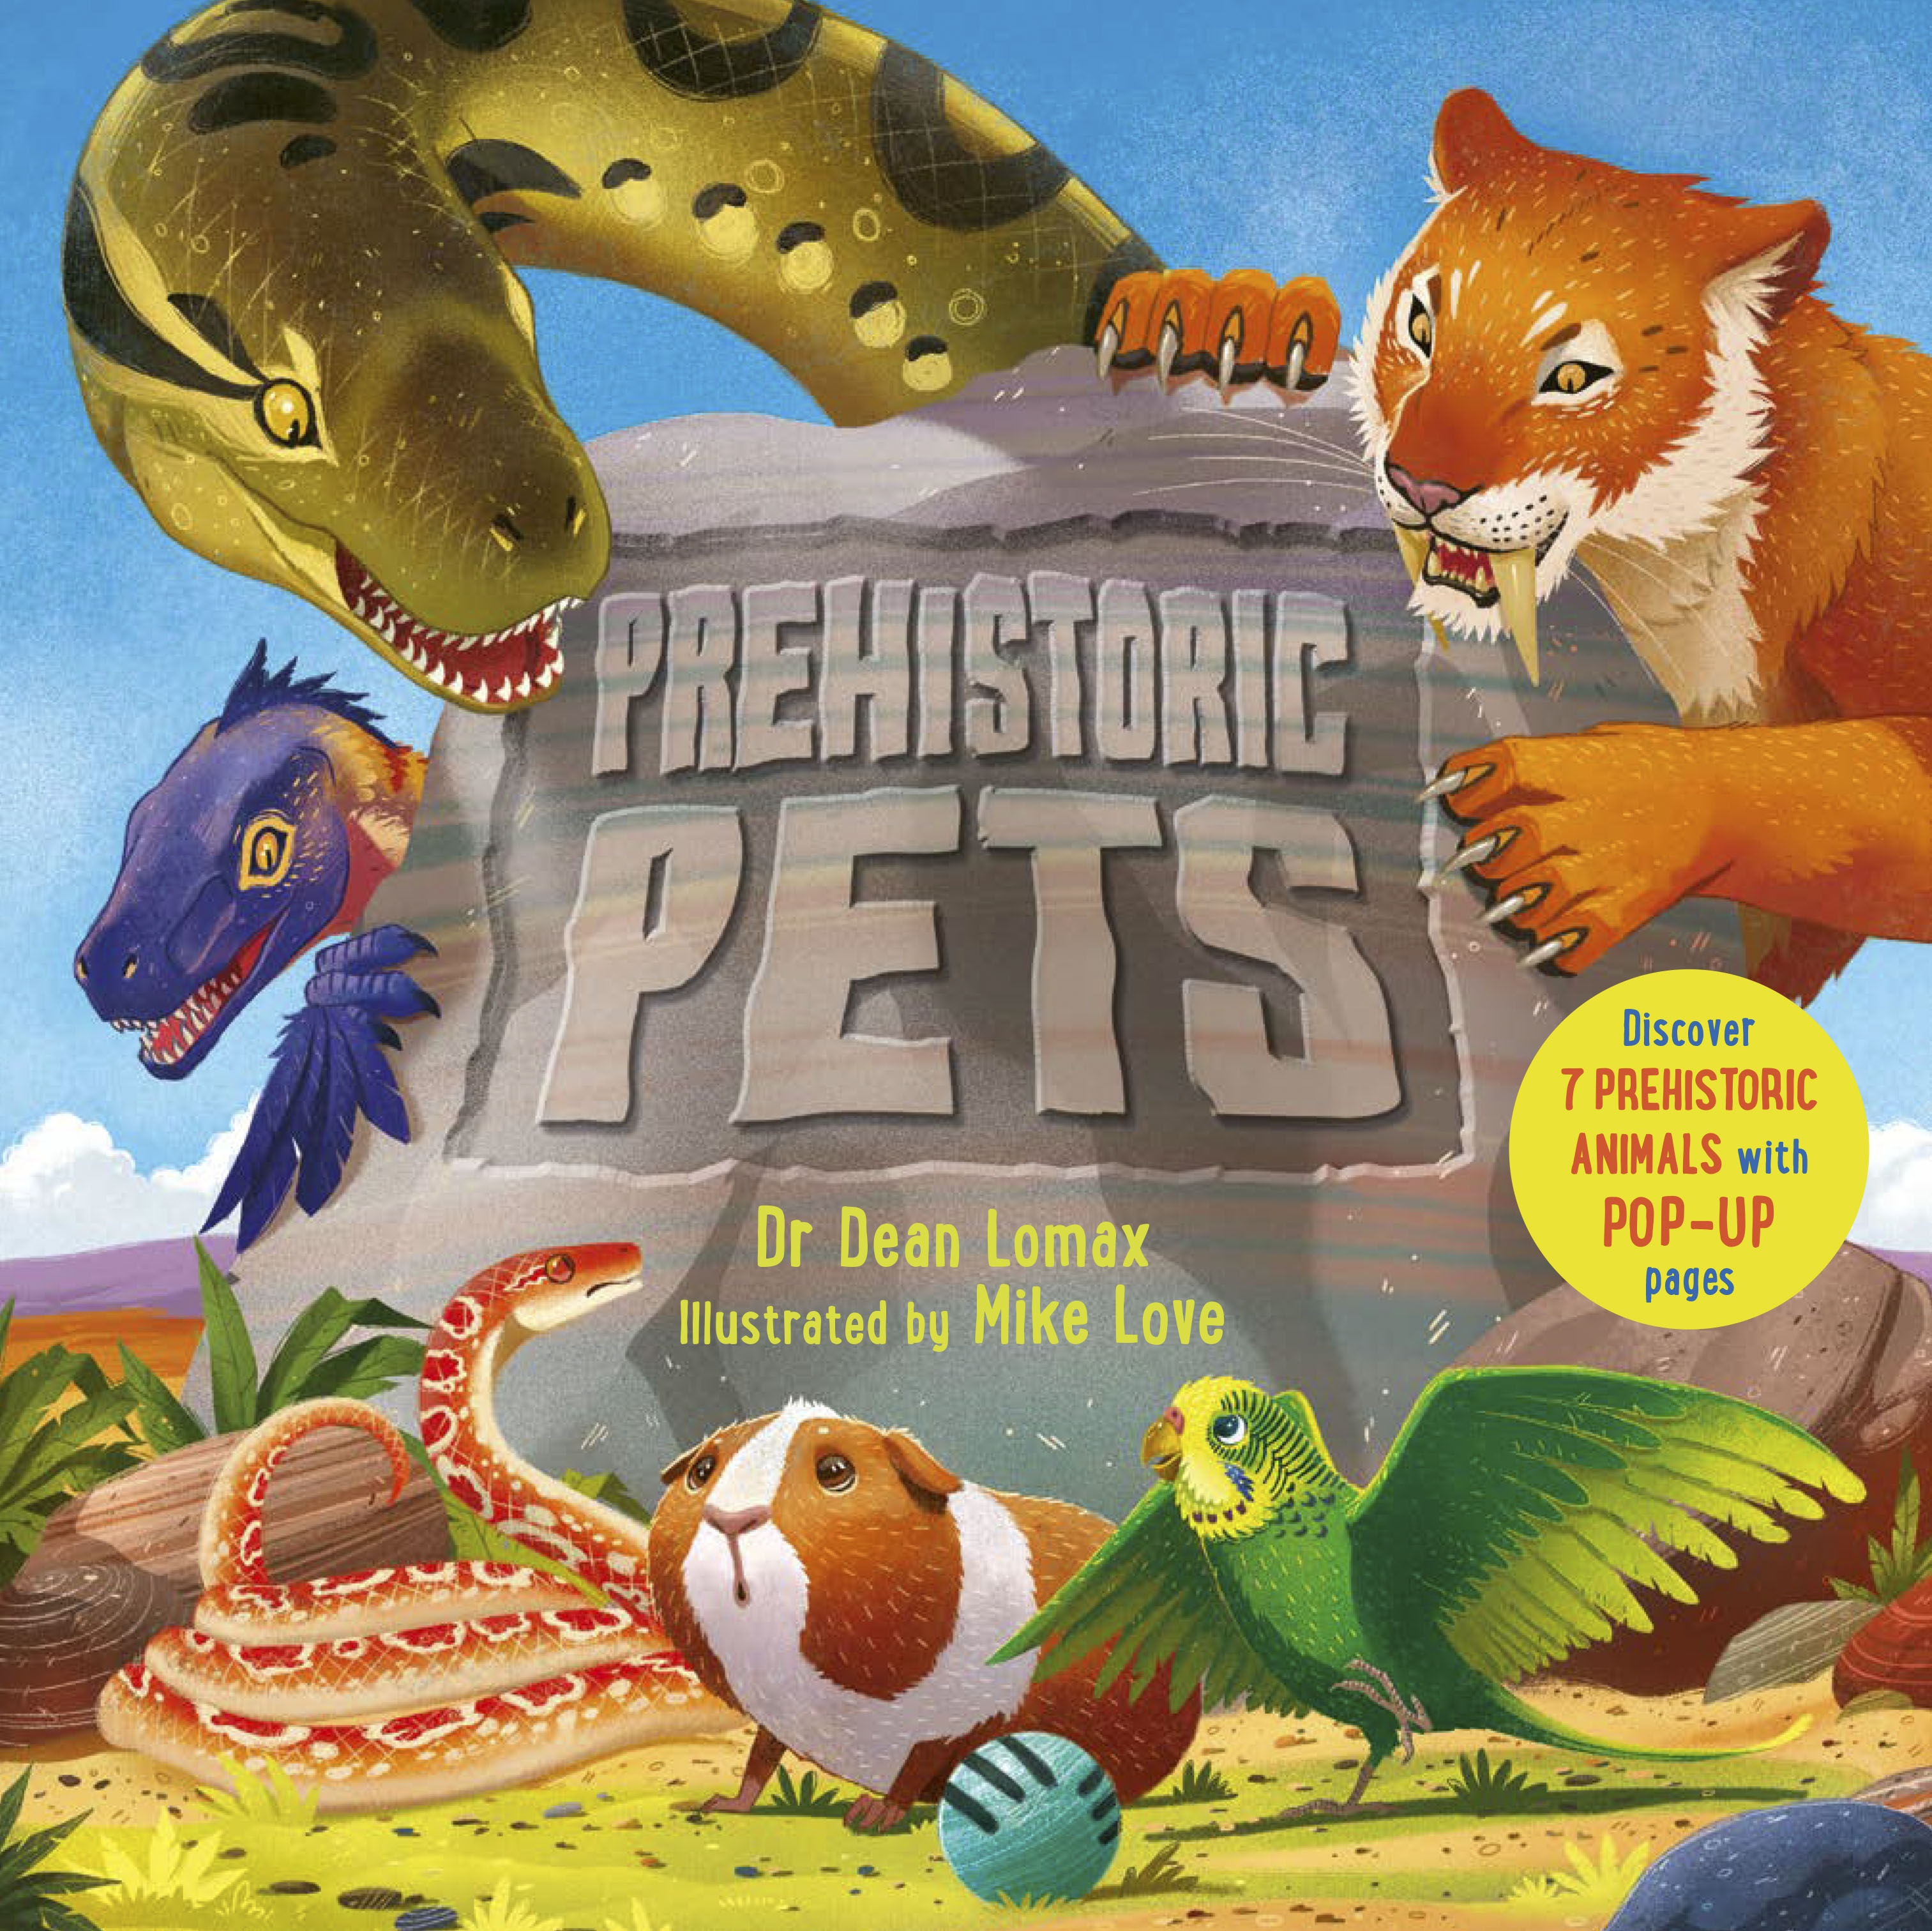 Book cover for Prehistoric Pets by Dean Lomax illustrated by Mike Love